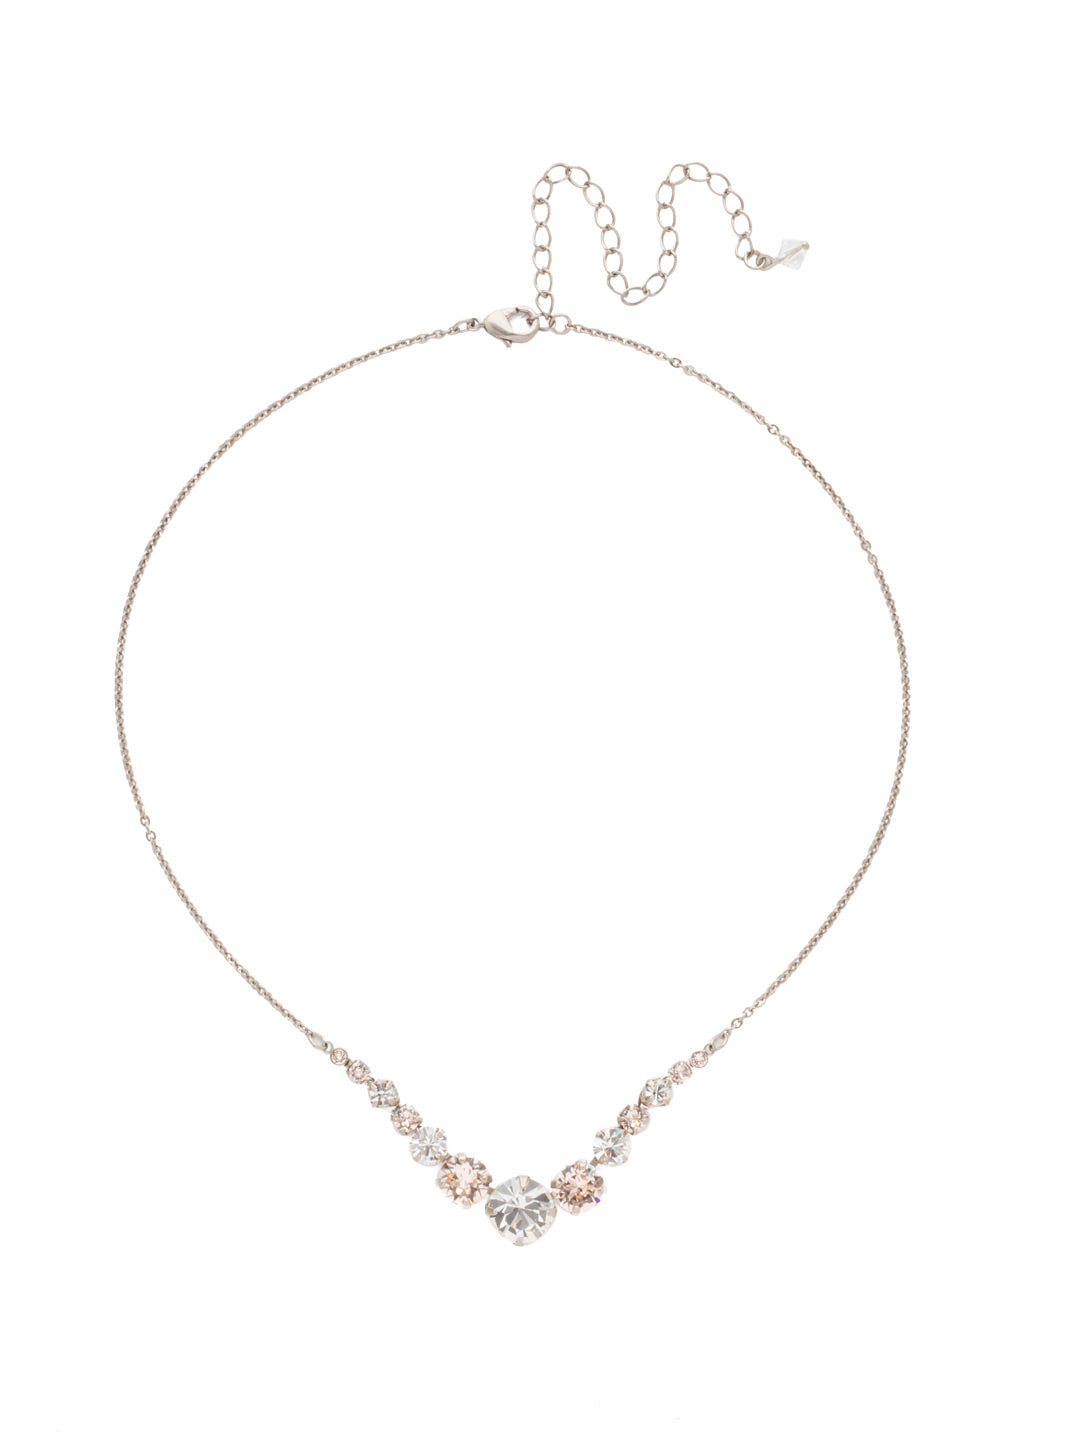 Delicate Round Tennis Necklace - NCQ14ASPLS